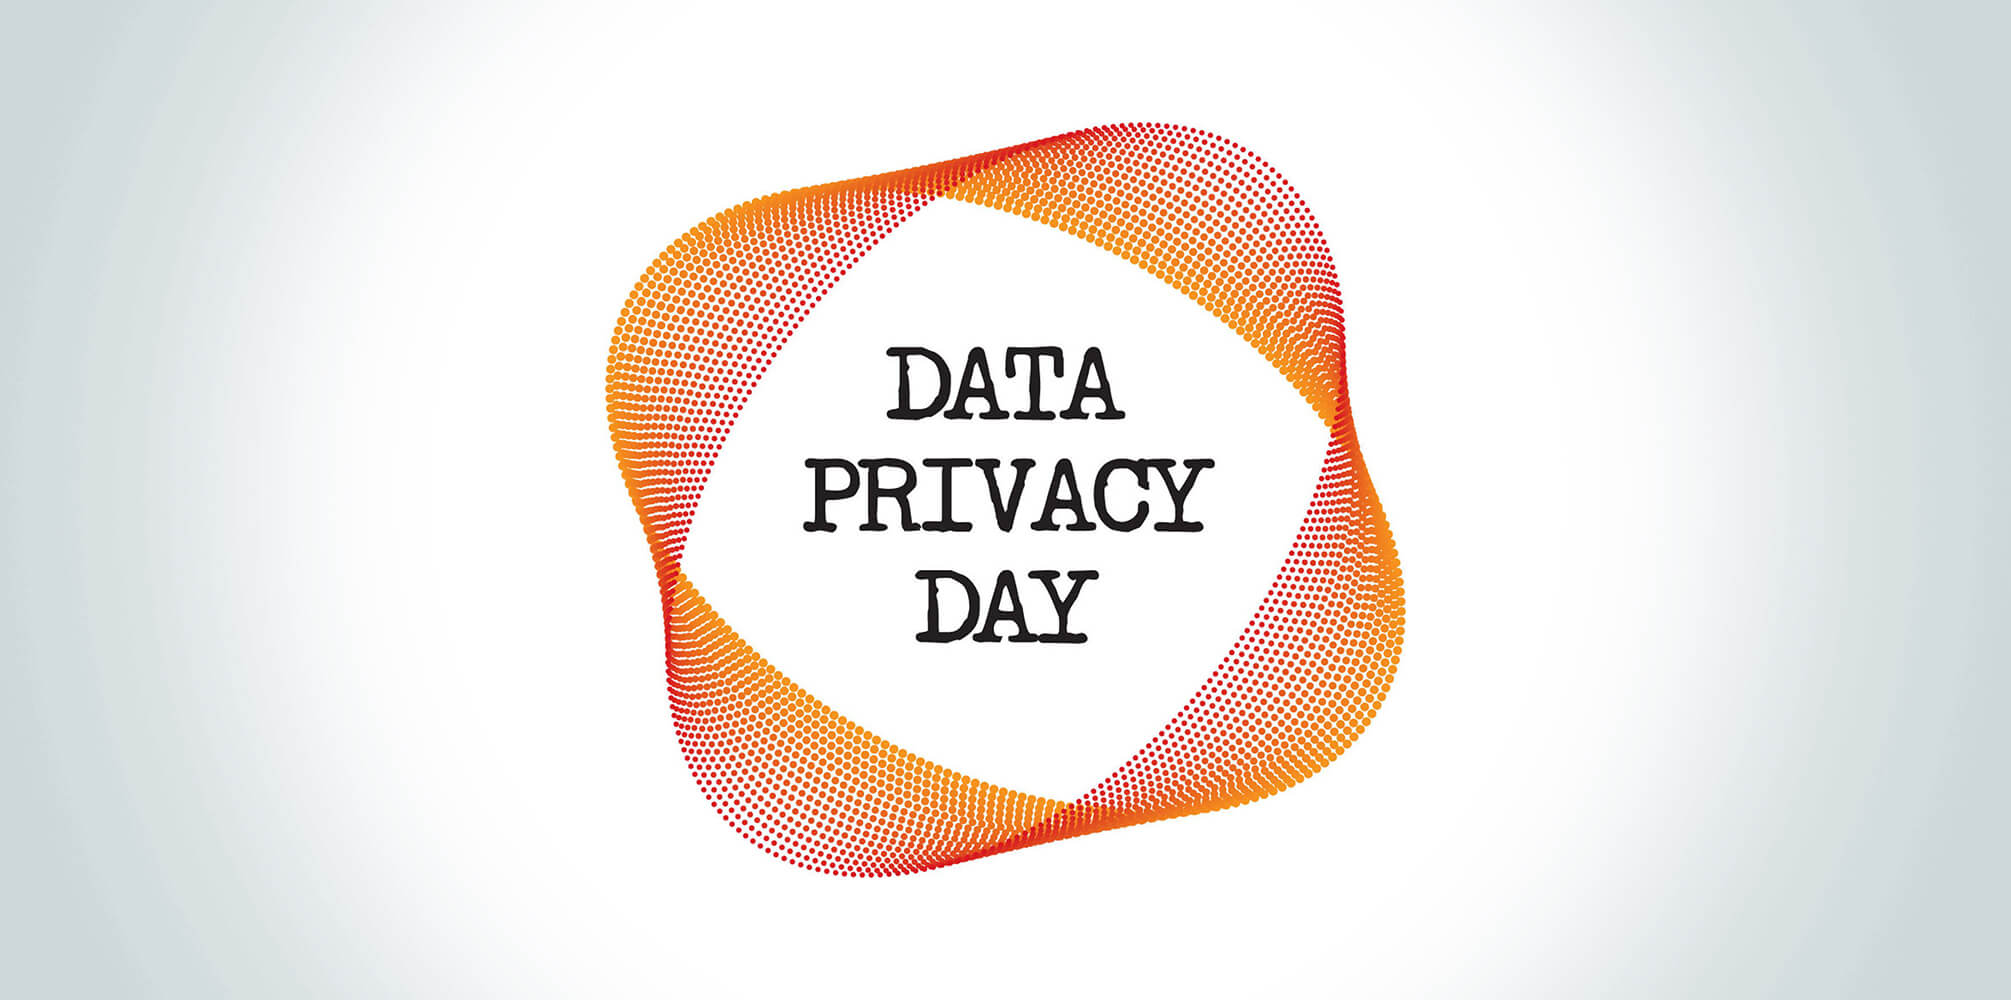 https://www.everlaw.com/wp-content/uploads/2021/01/data-privacy-day.jpg